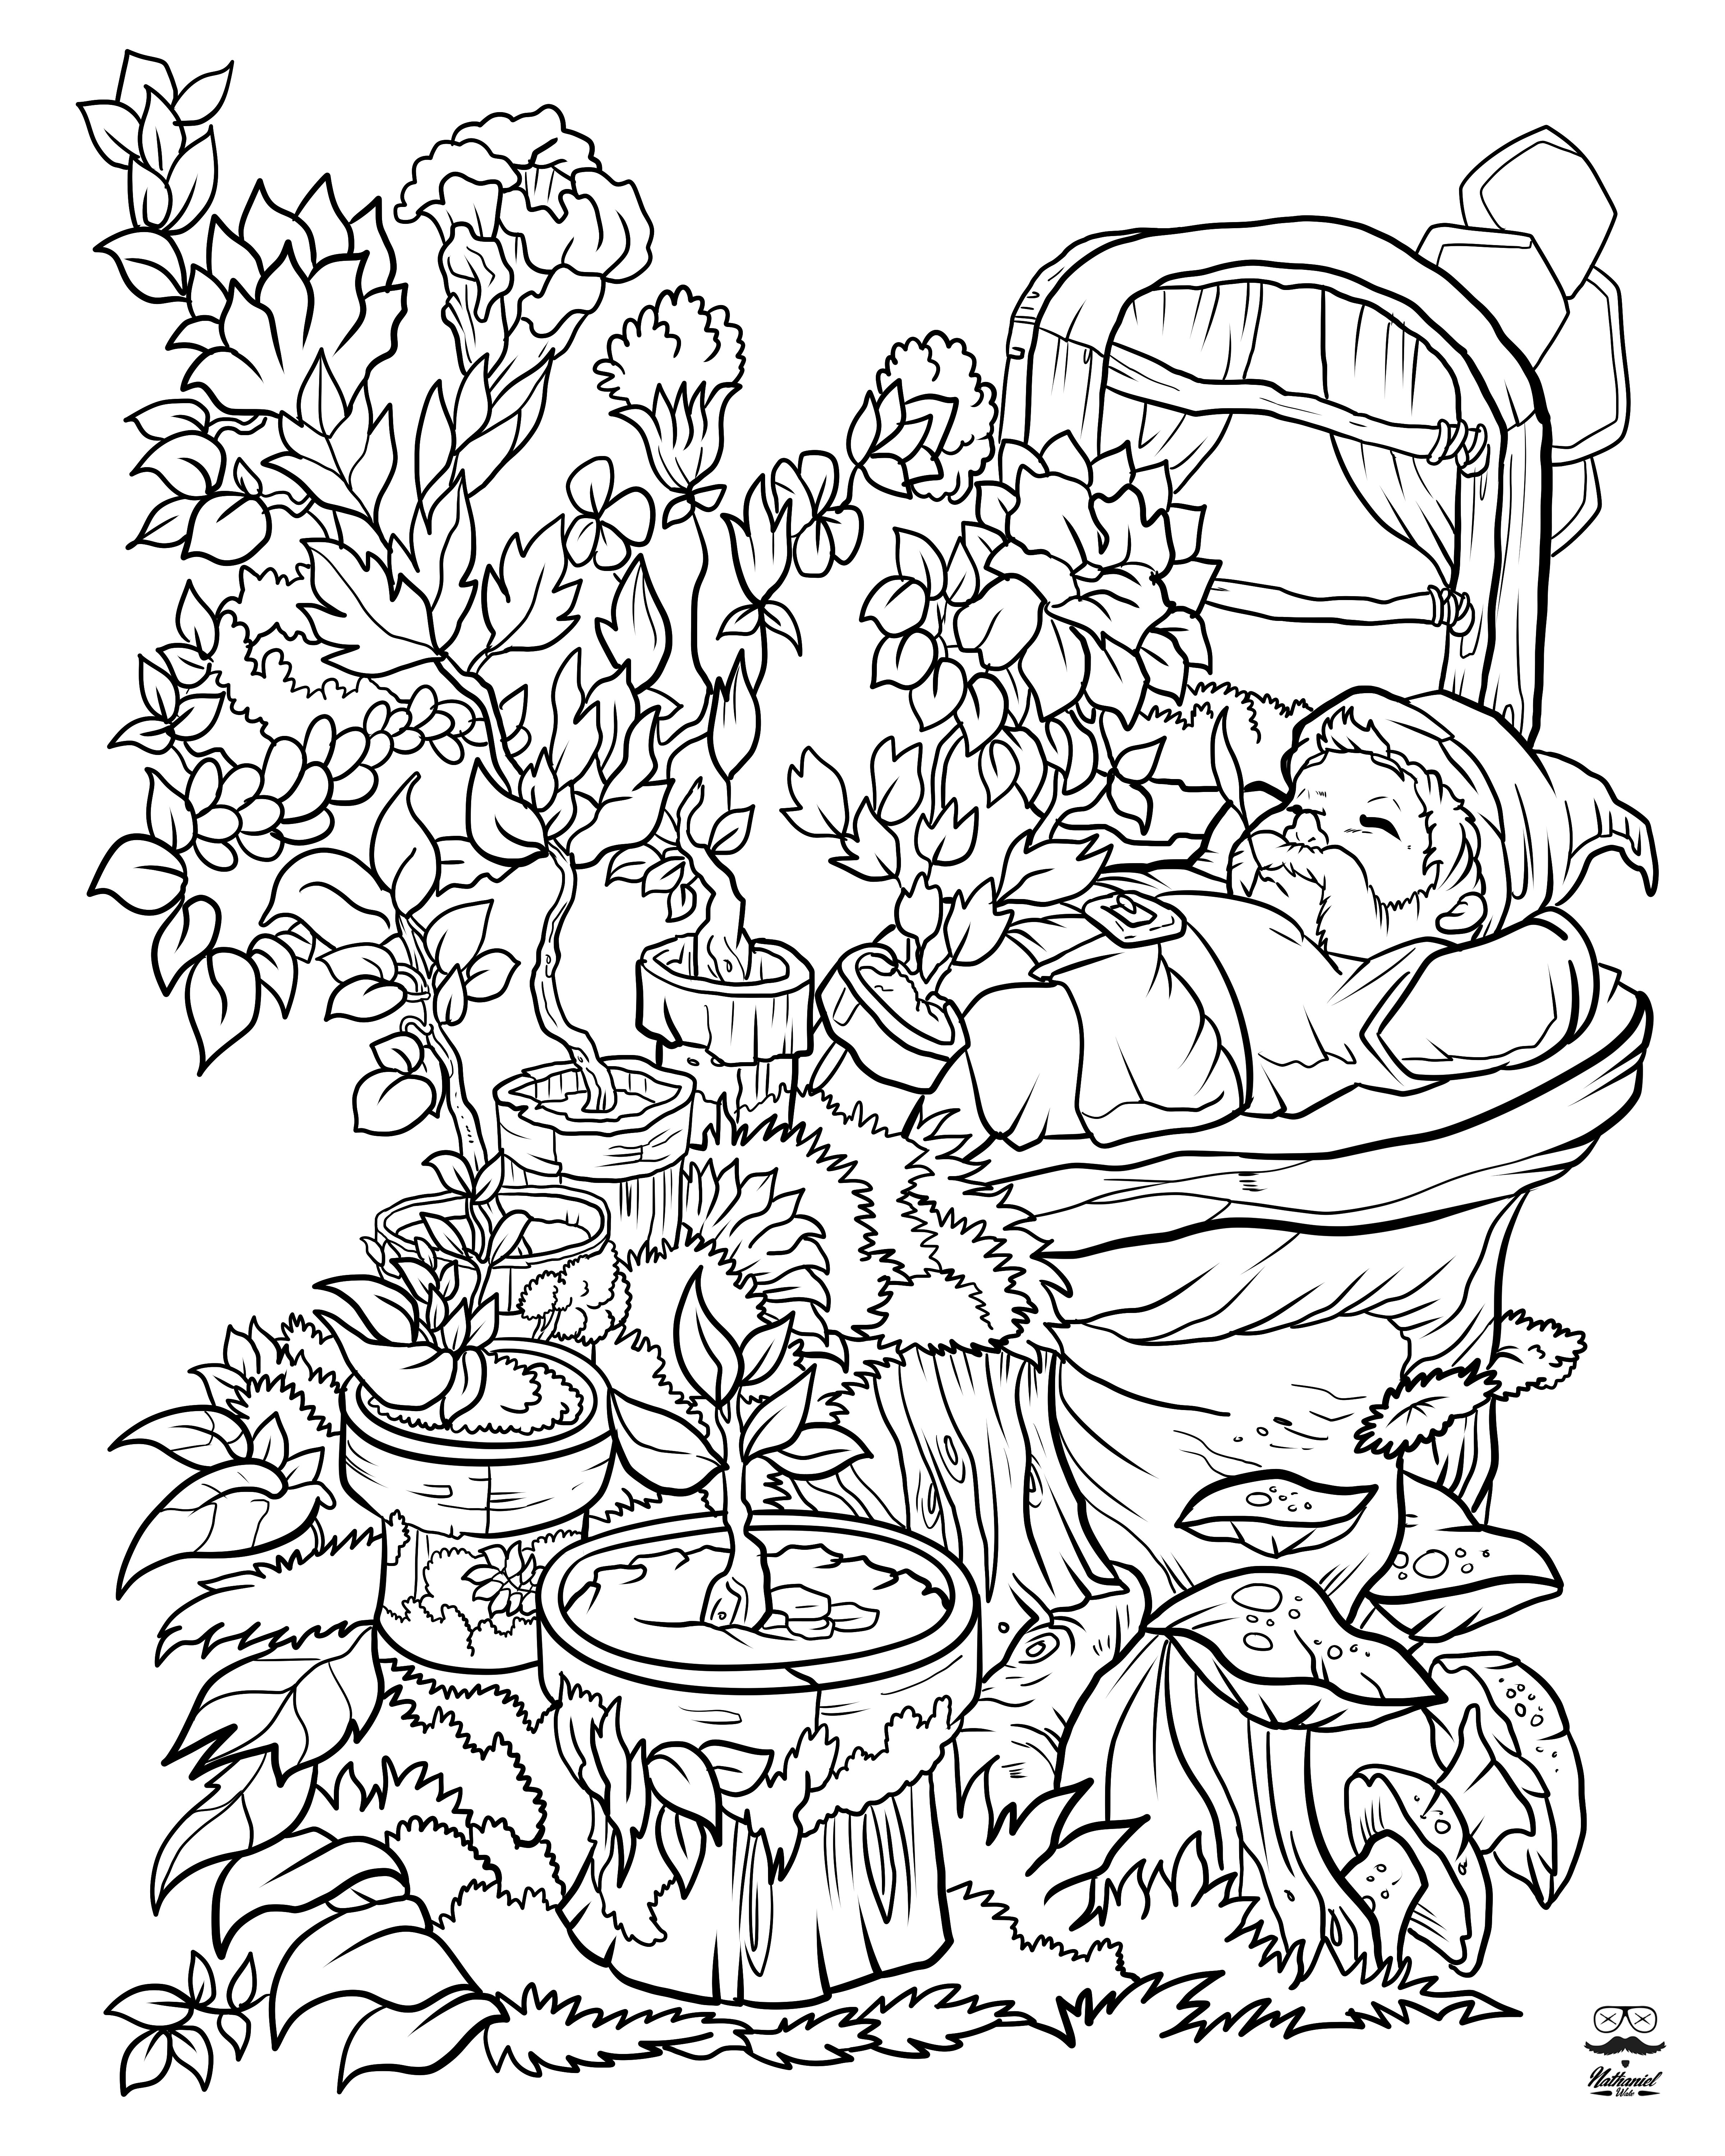 printable flower coloring pages for adults 12 free printable adult coloring pages for summer flower adults printable coloring pages for